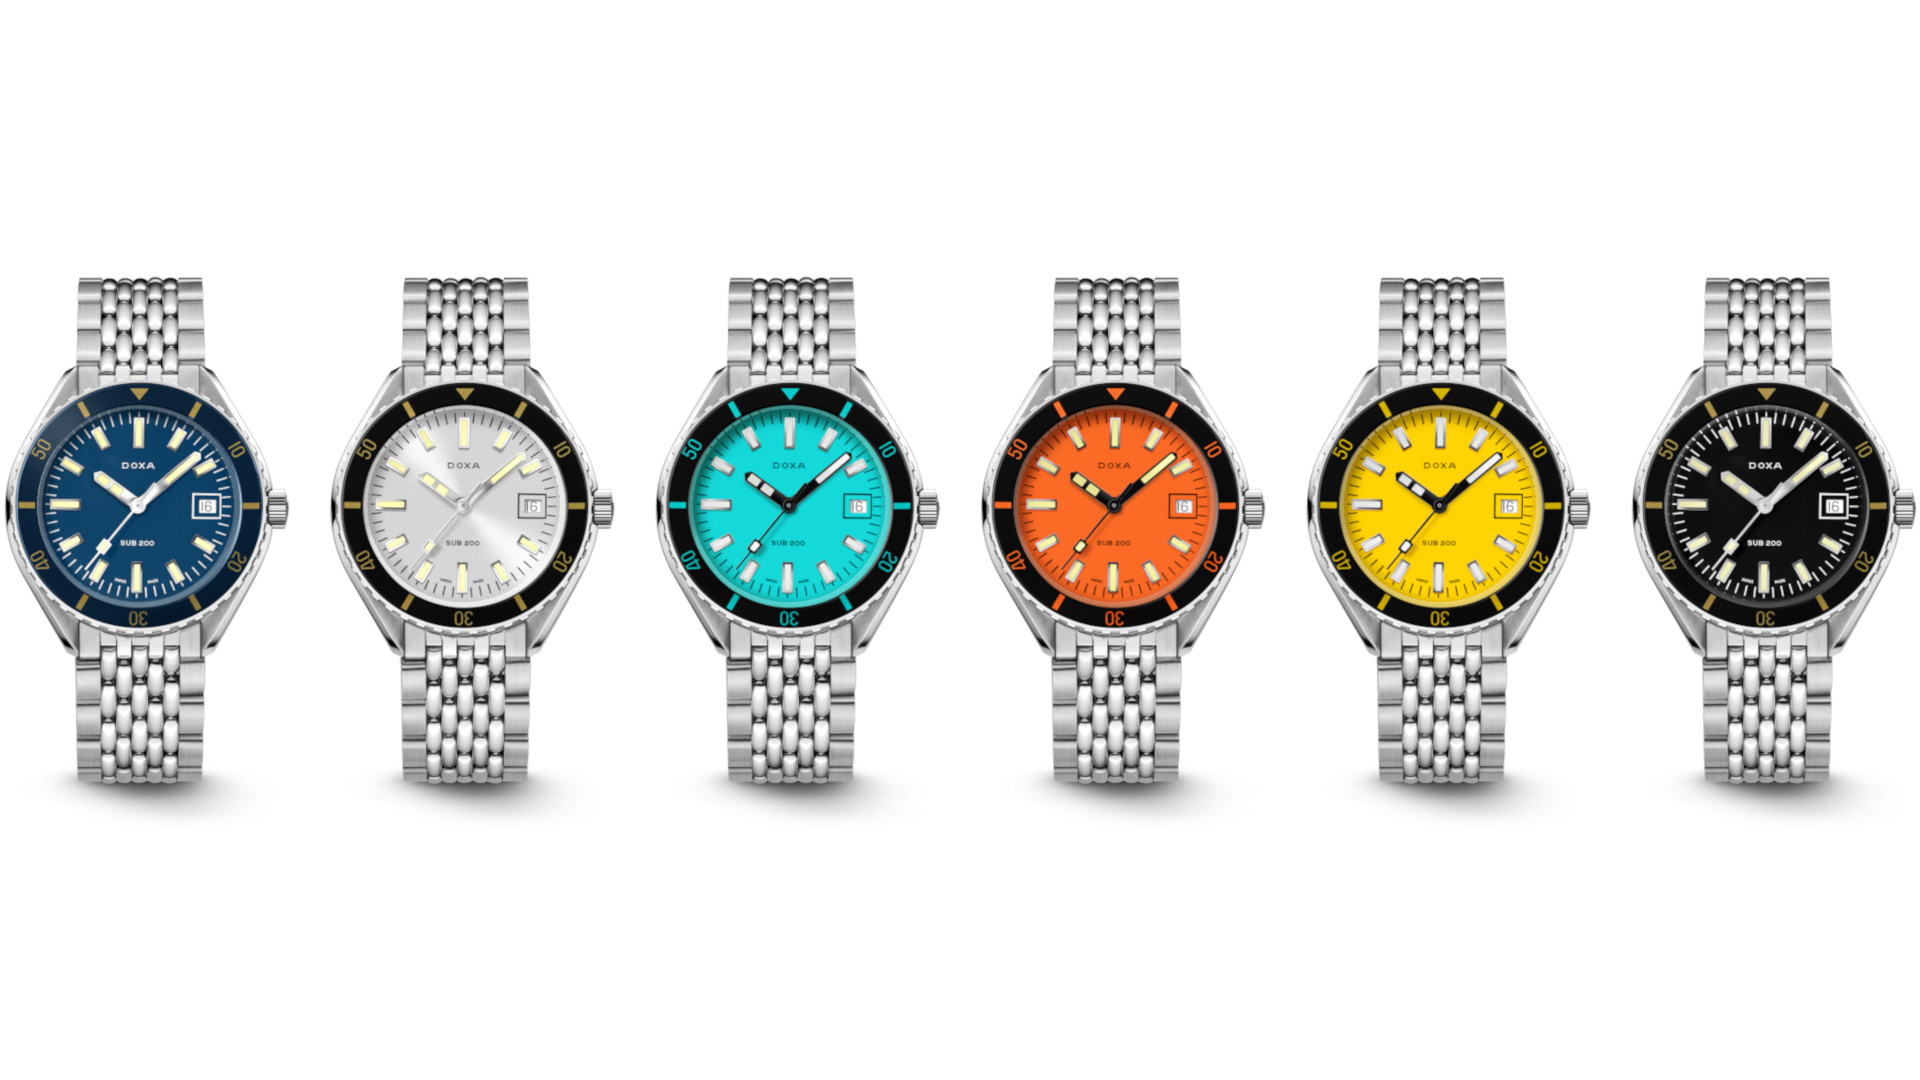 Doxa unveils a more casual dive watch with their Sub 200 collection